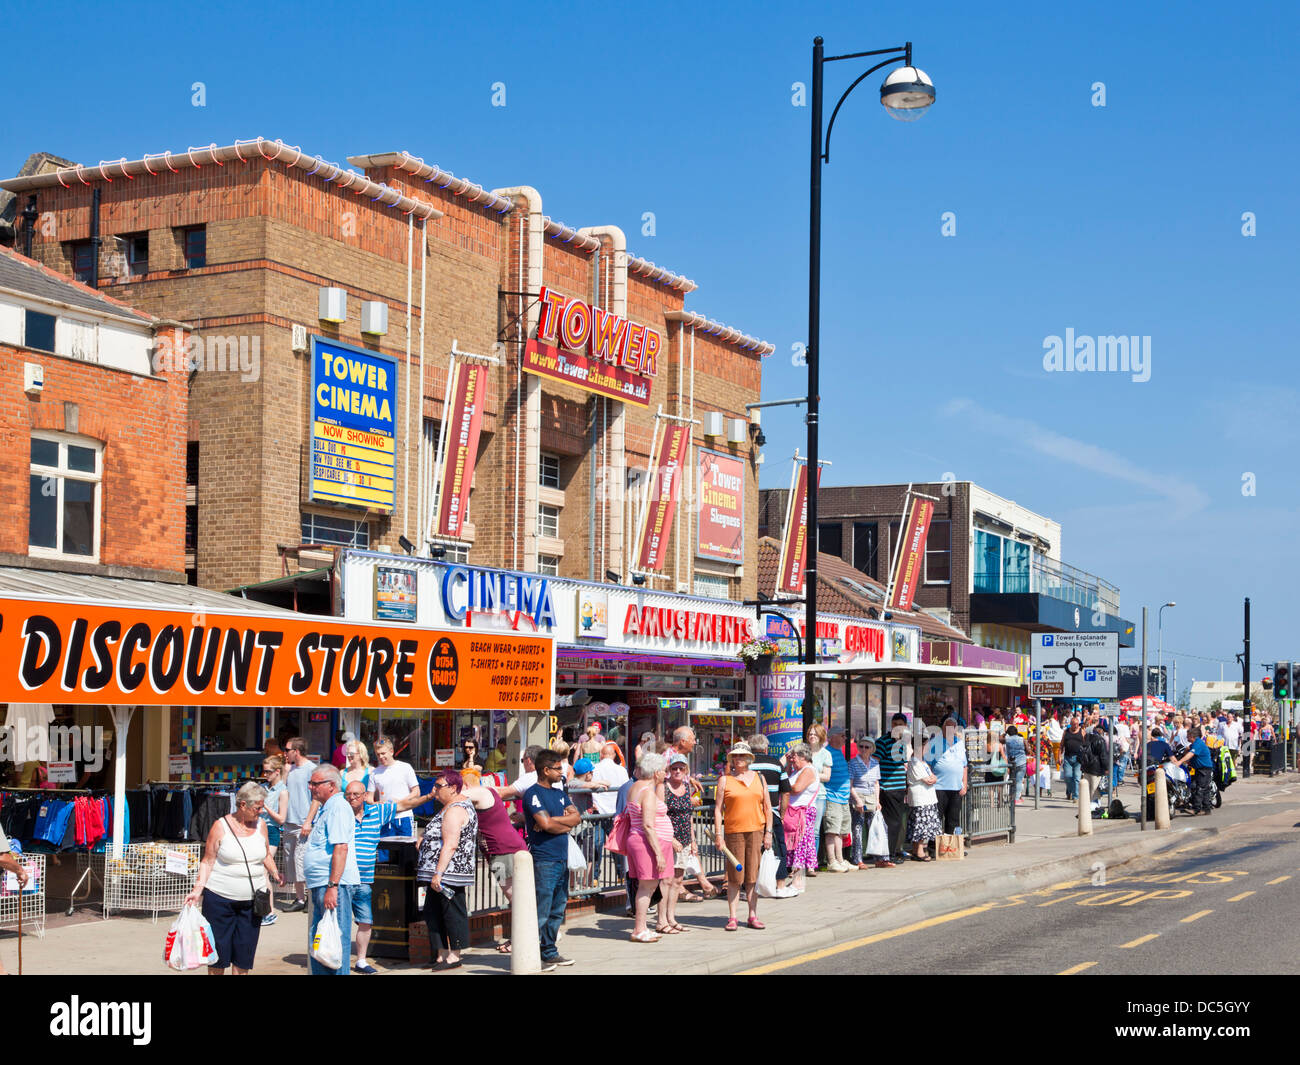 Shops and cinema in the town centre Skegness seafront Lincolnshire England UK GB EU Europe - Stock Image